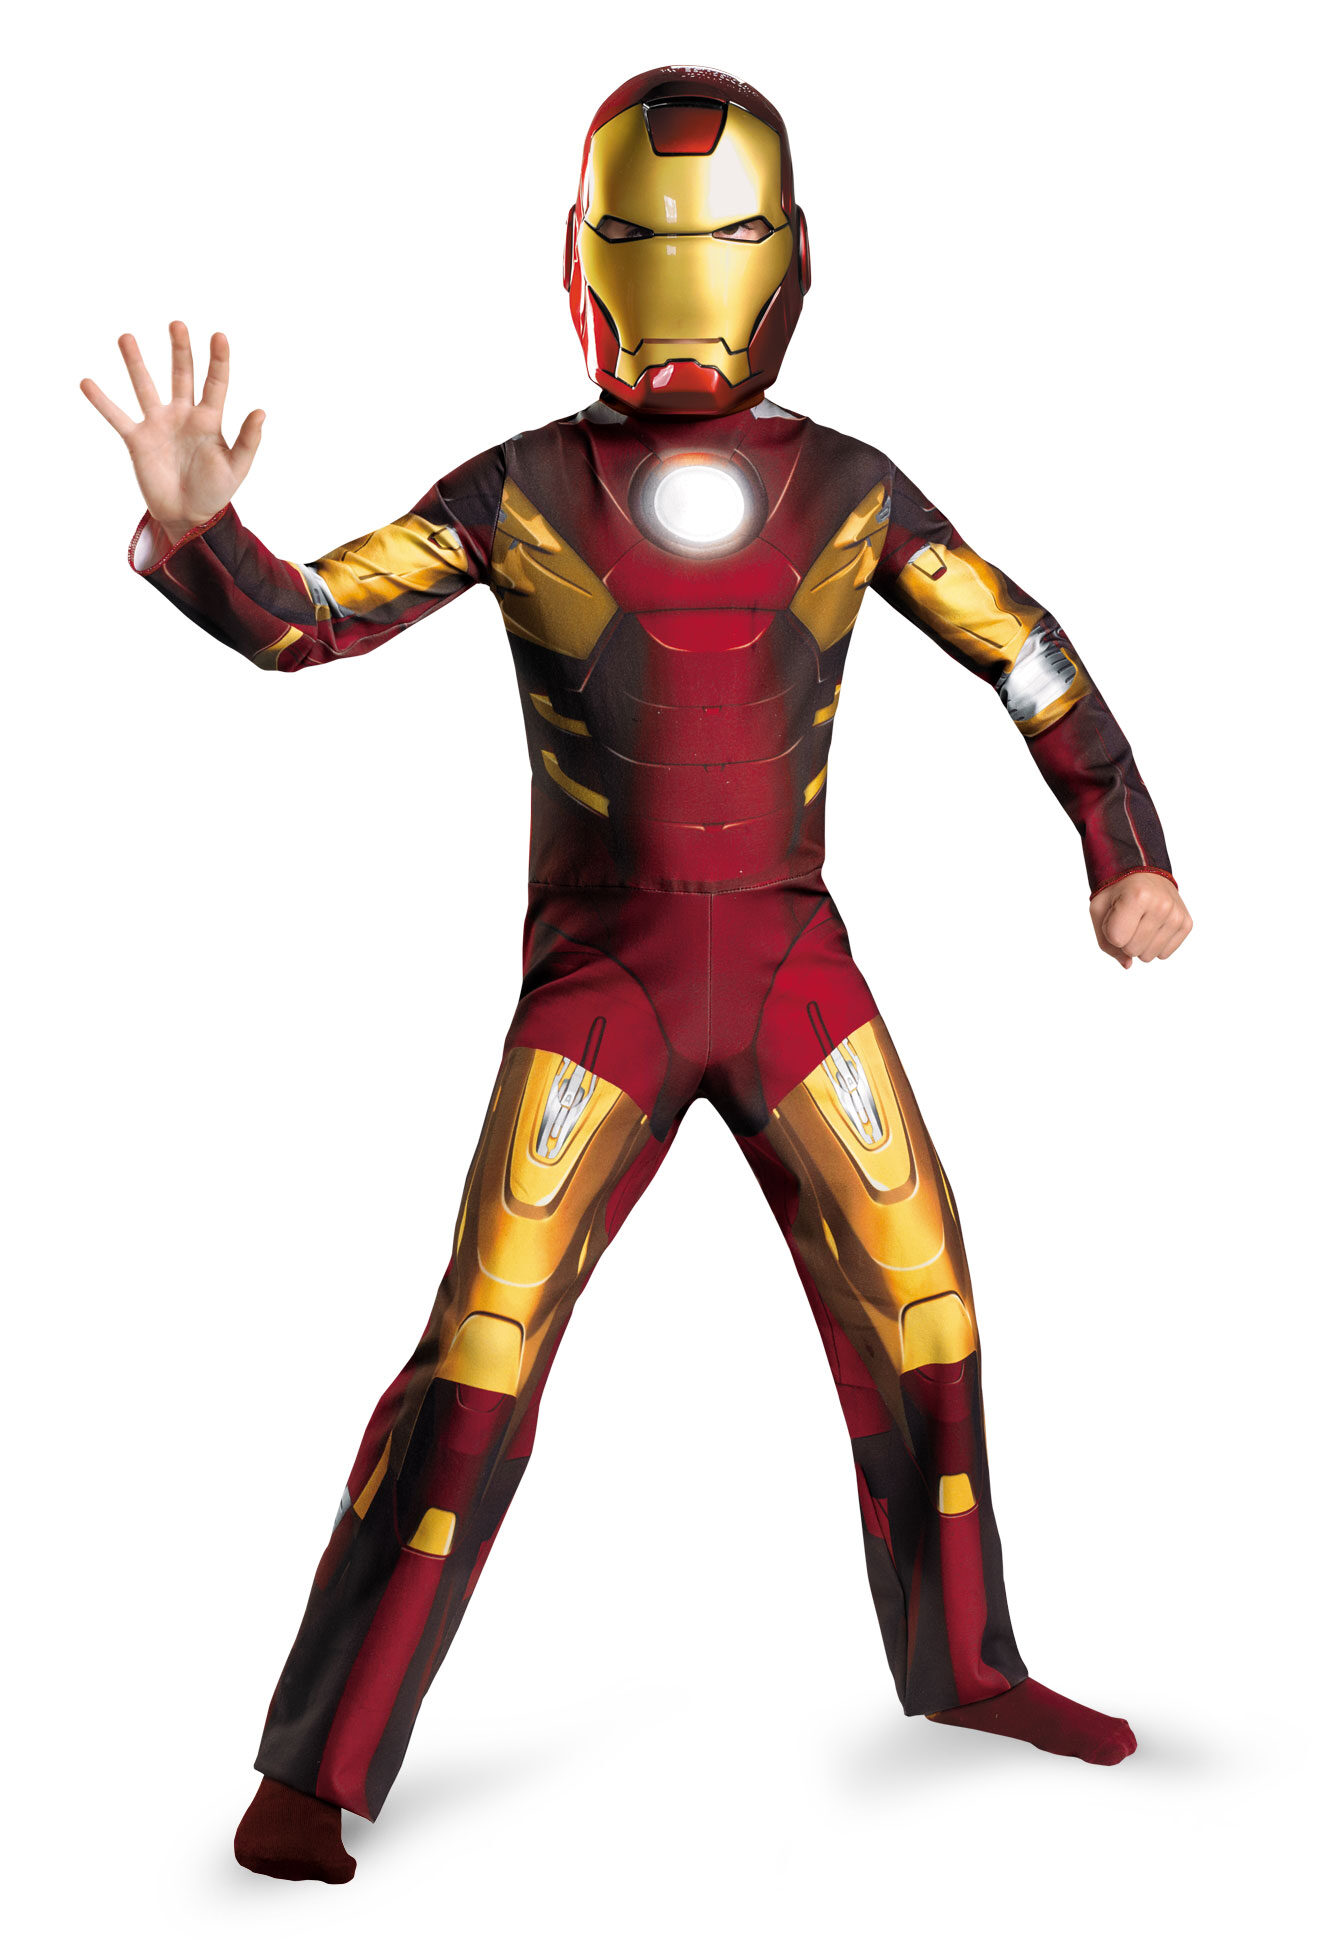 Our Iron Man costumes come in adult and child sizes and are from the original comic book. These are realistic Iron Man costumes for Halloween. senonsdownload-gv.cf Kids Iron Man Snow Jacket. $ $ Sale - 75% Exclusive. Iron Man Suit Jacket (Alter Ego) $ $ Adult Red and .